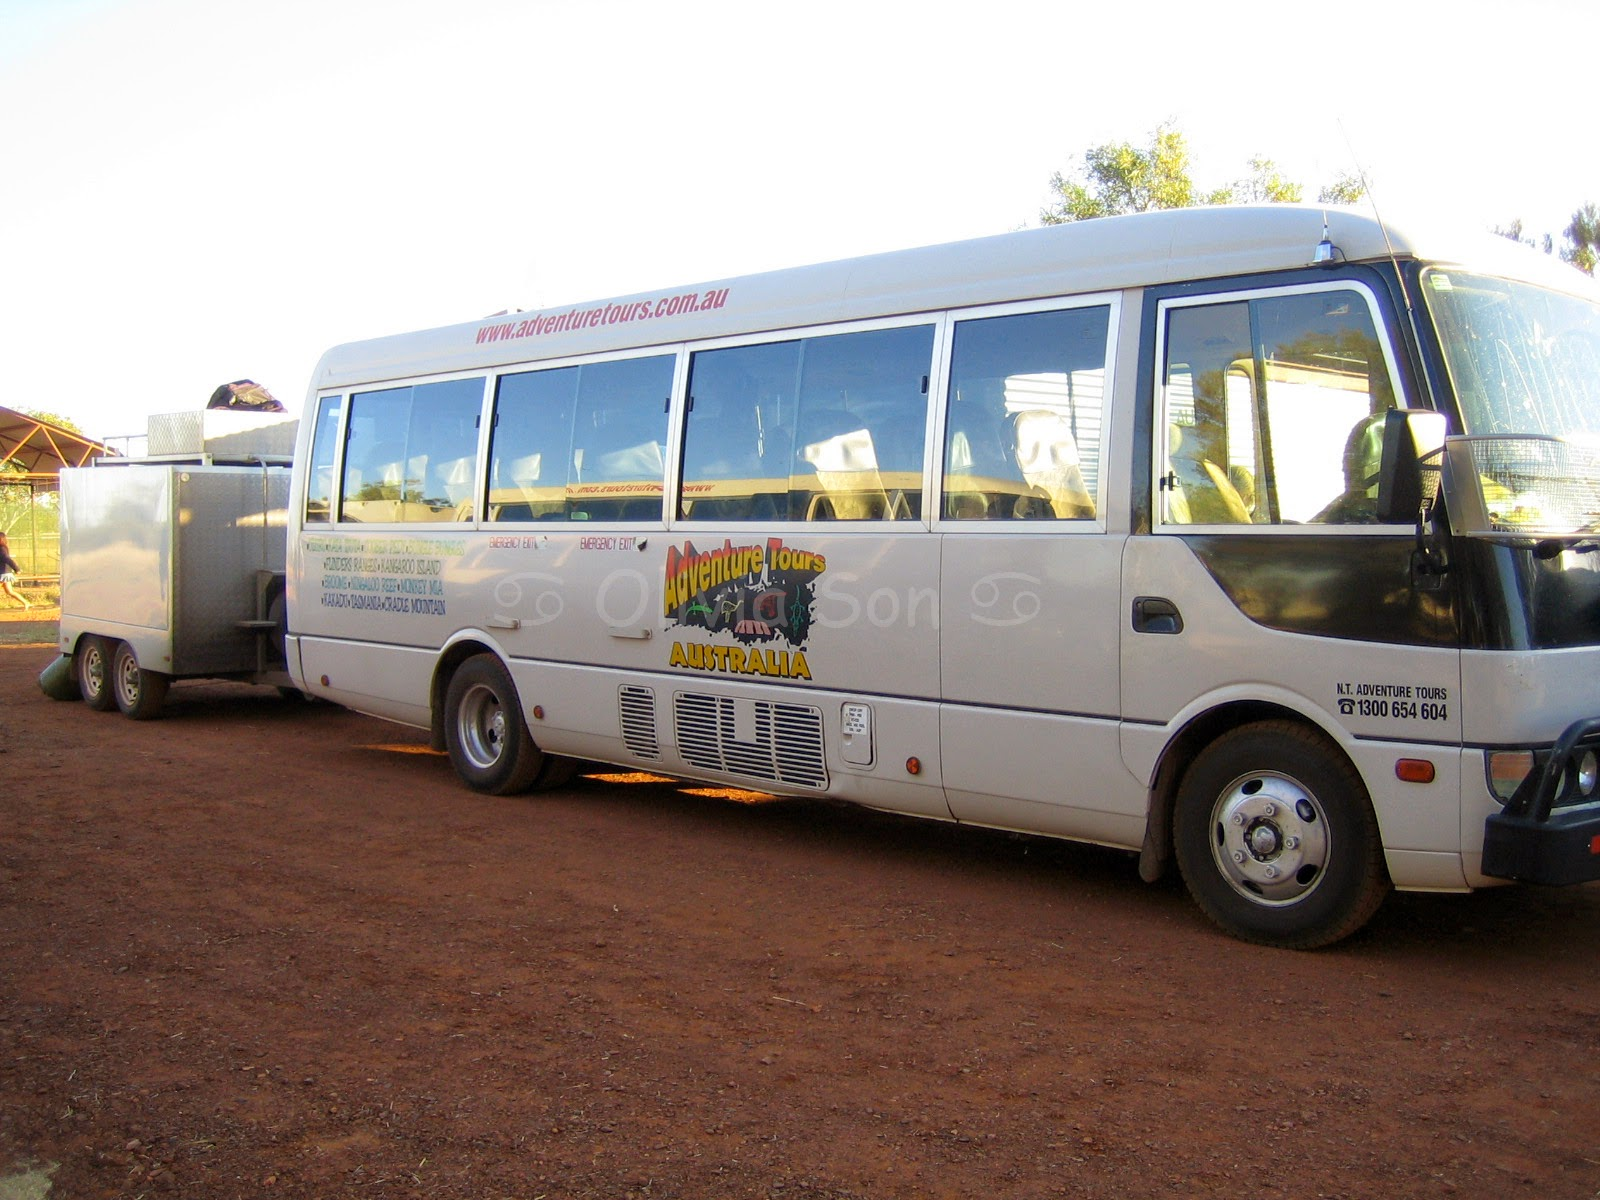 Bus, Northern Territory, Australie